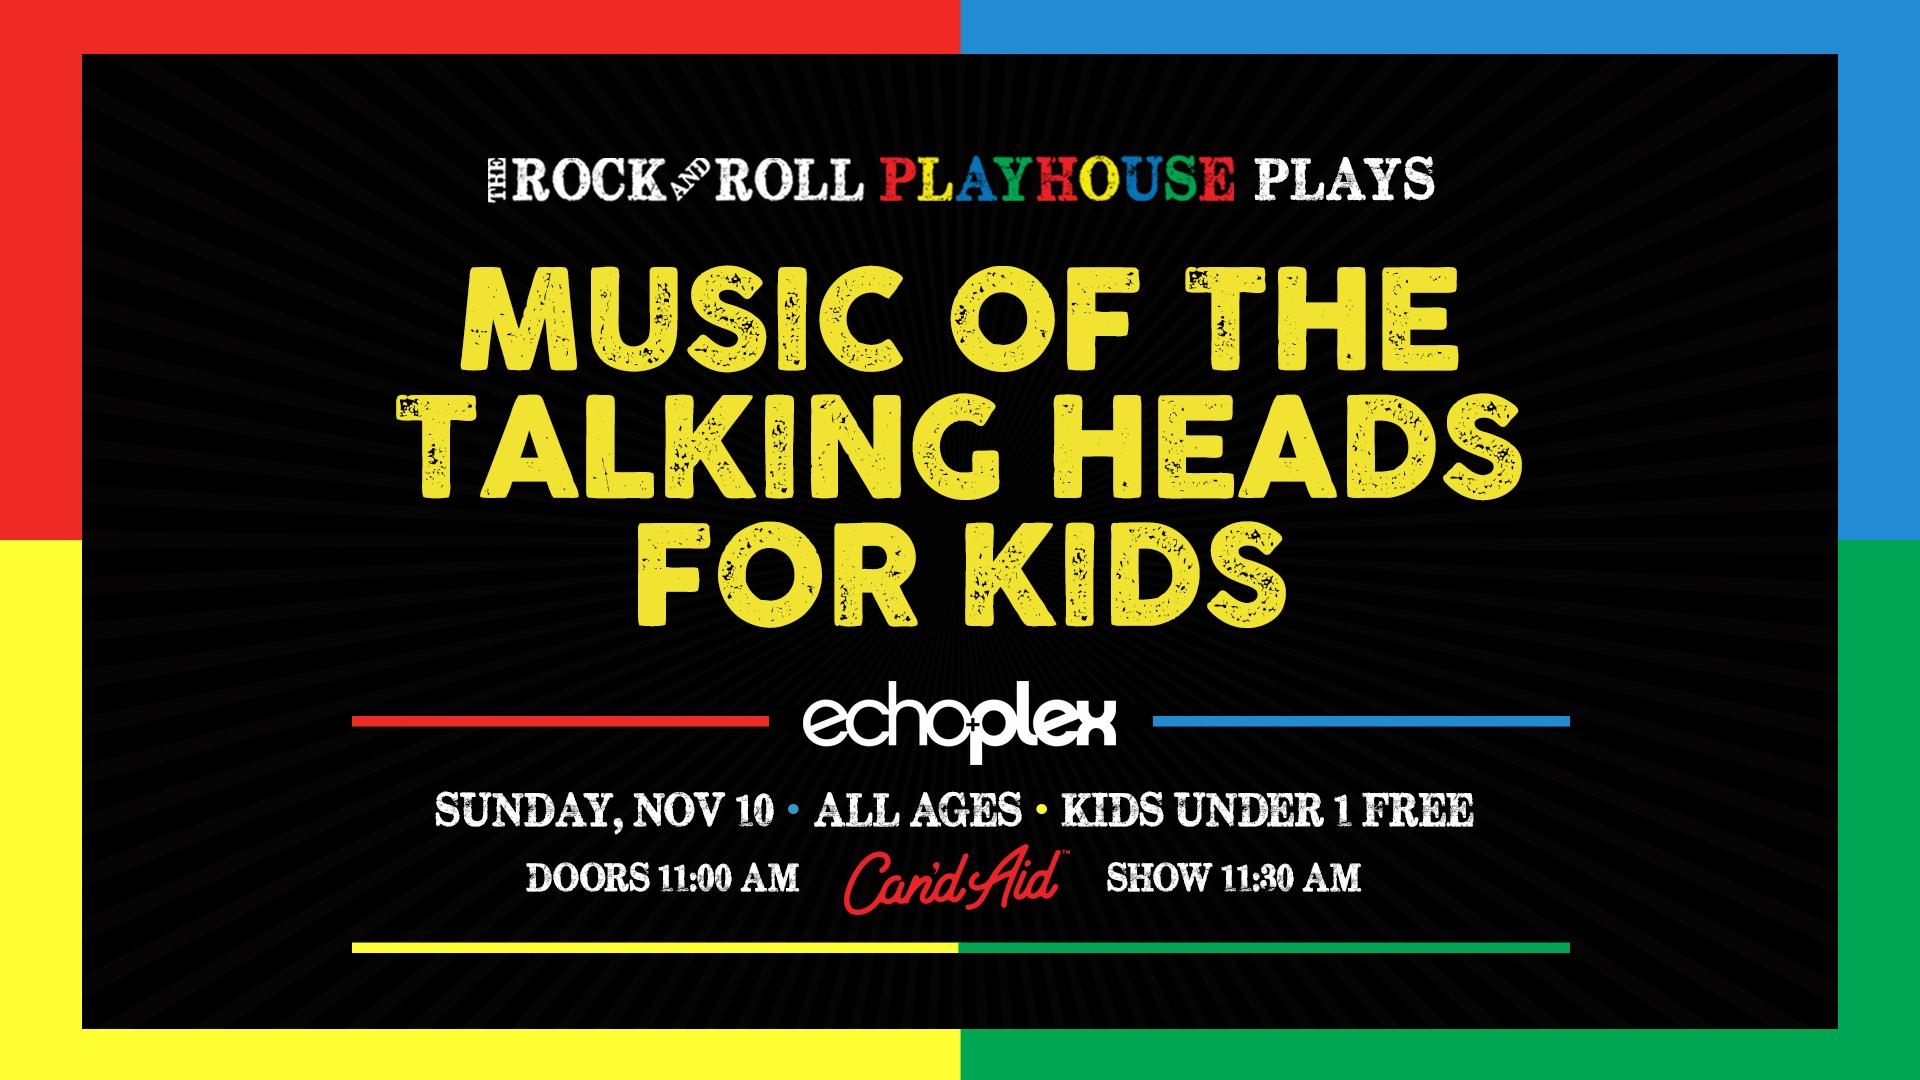 The Music of The Talking Heads for Kids